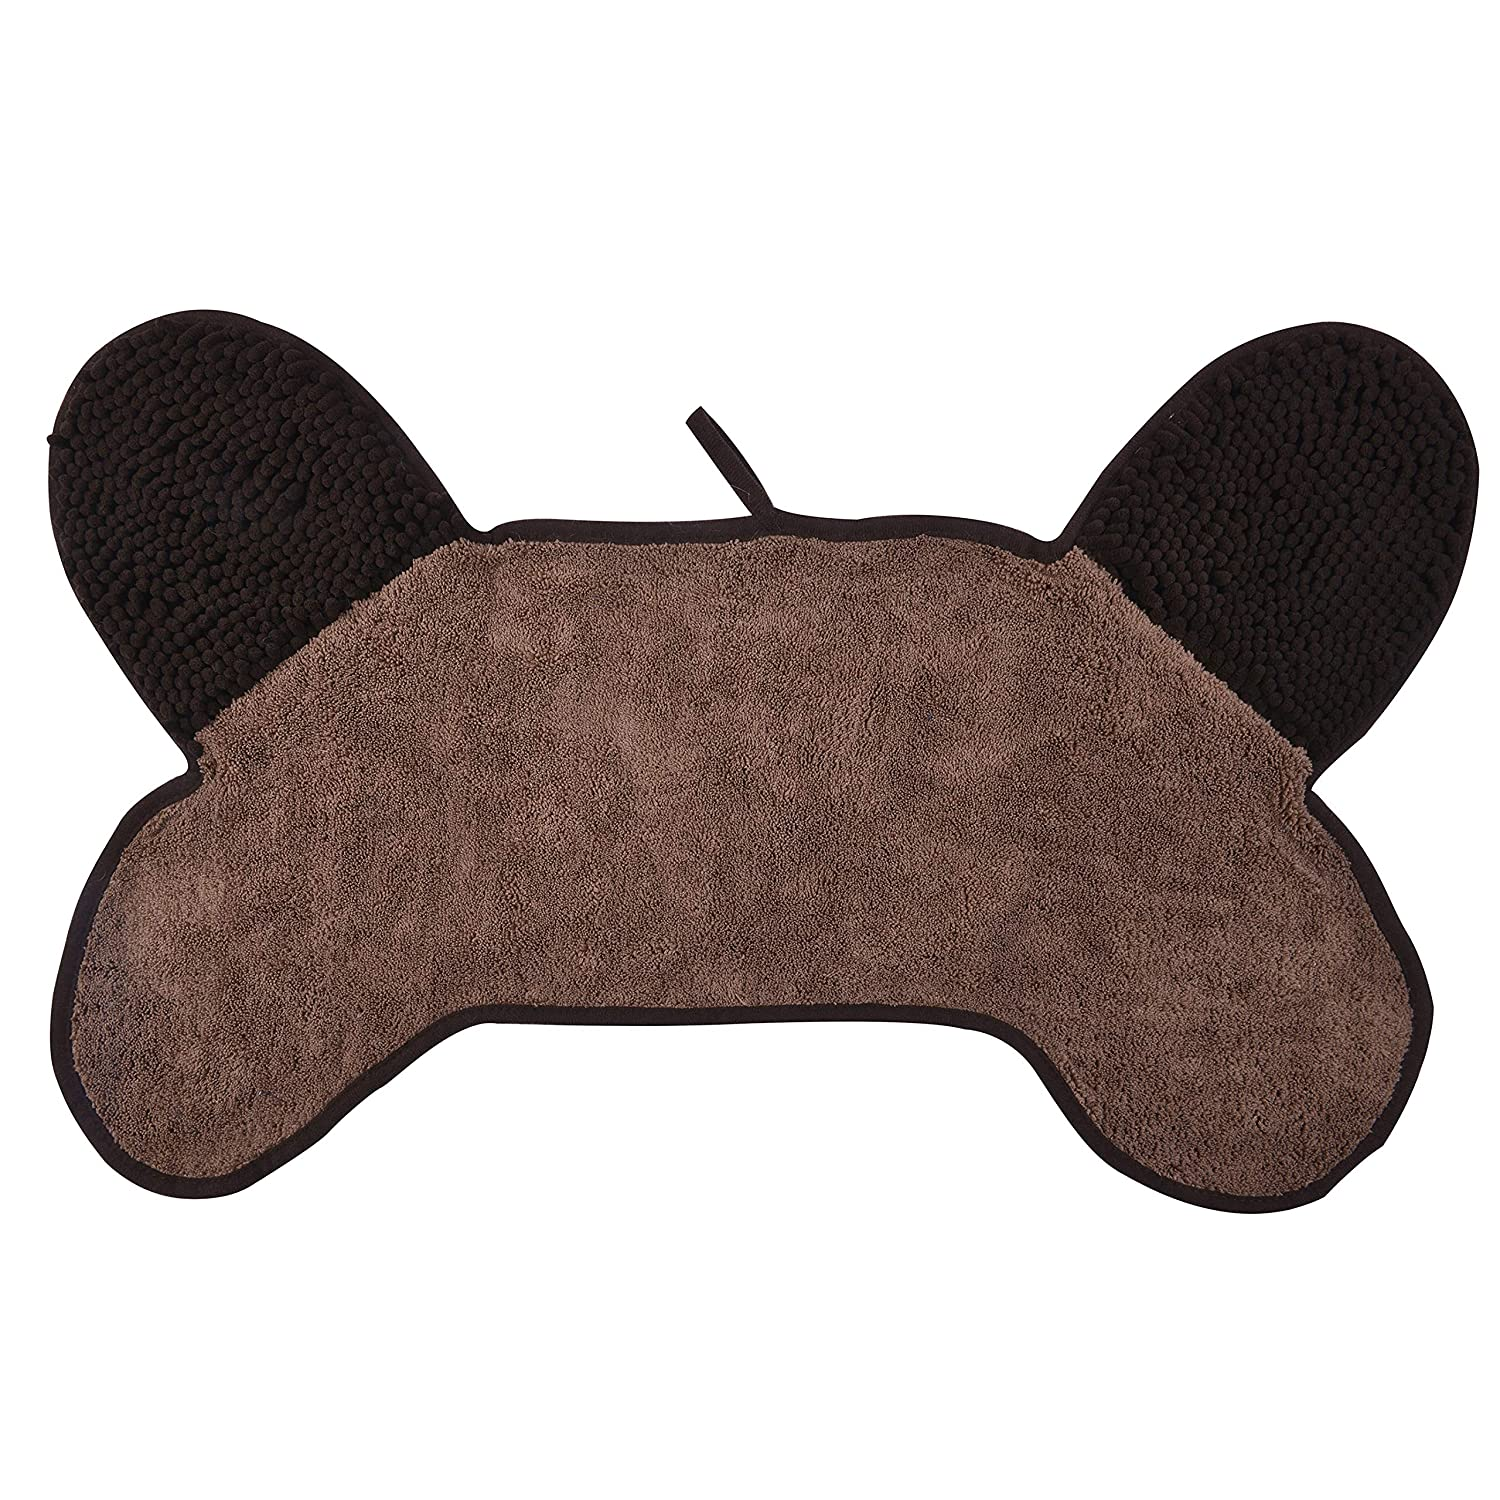 Brown 21 x 31 inch Brown 21 x 31 inch SOFTOWN Bone Shaped Dog Towel with Chenille Hand Pockets Fast Drying Soft Ultra Absorbent Microfiber Pet Bath Towel for Small and Medium Dog Pets 31 x 21 Inch